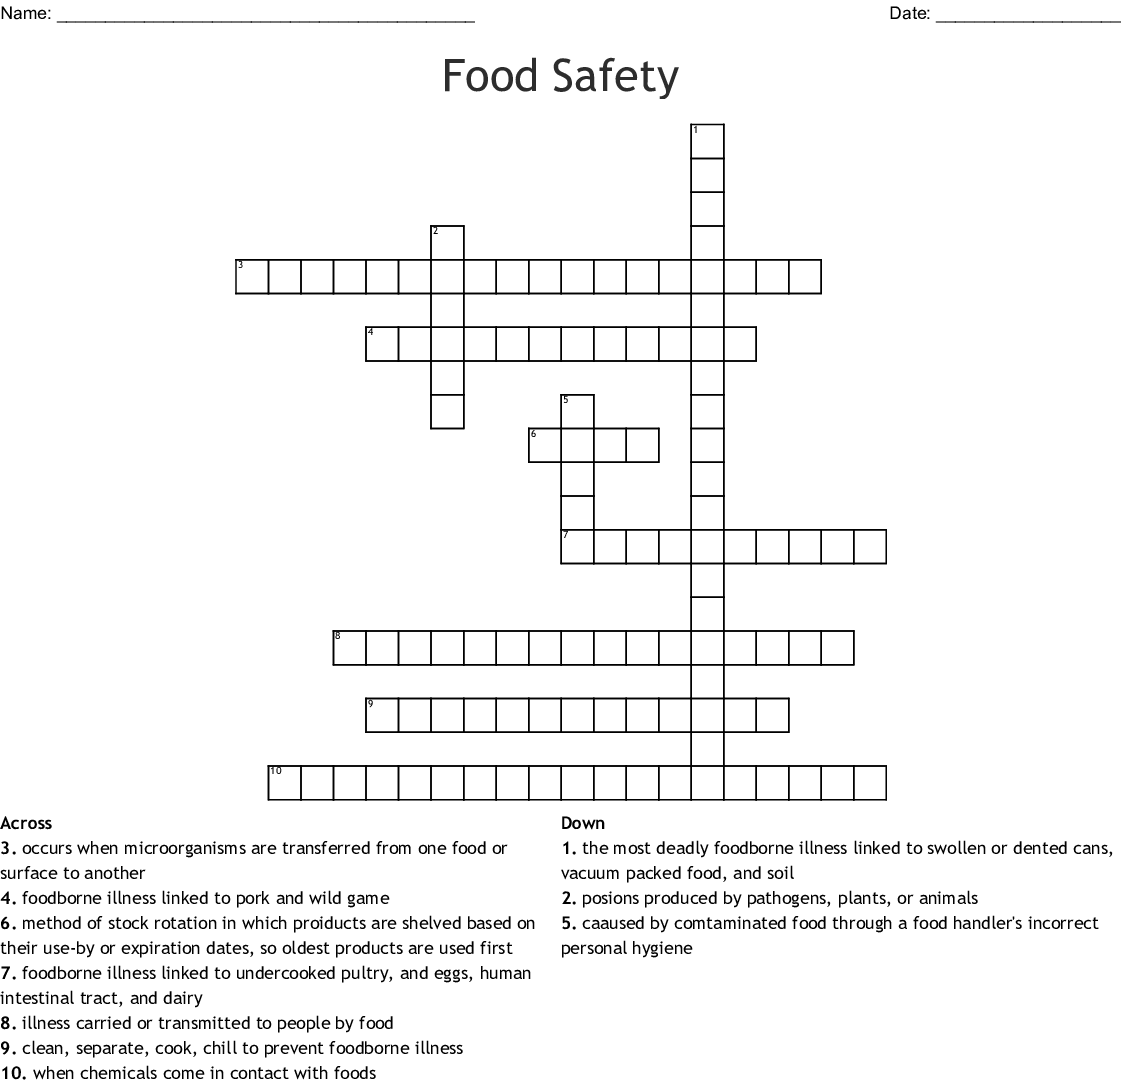 Food Safety Crossword